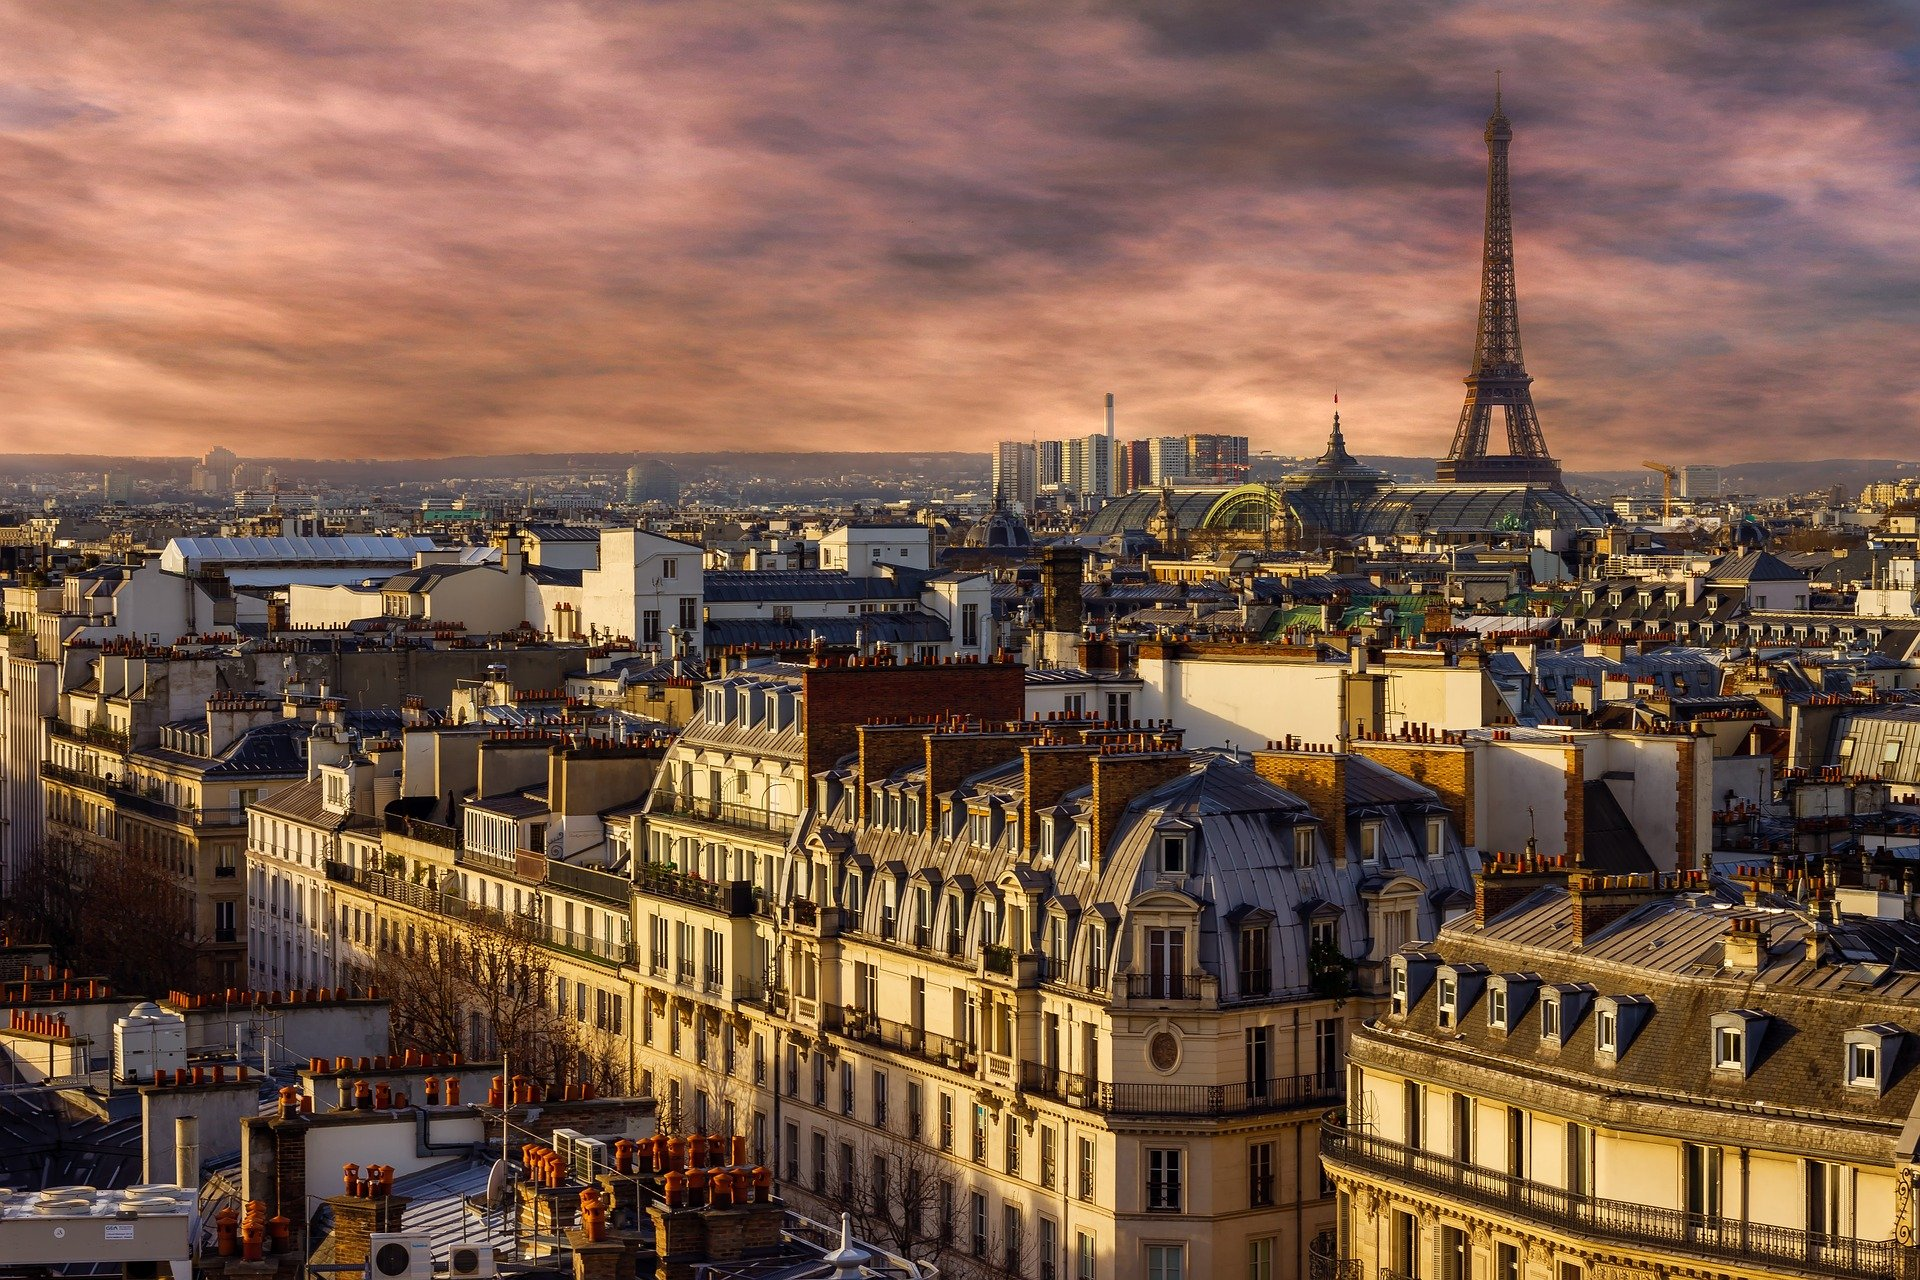 view of french paris with a cloudy sky